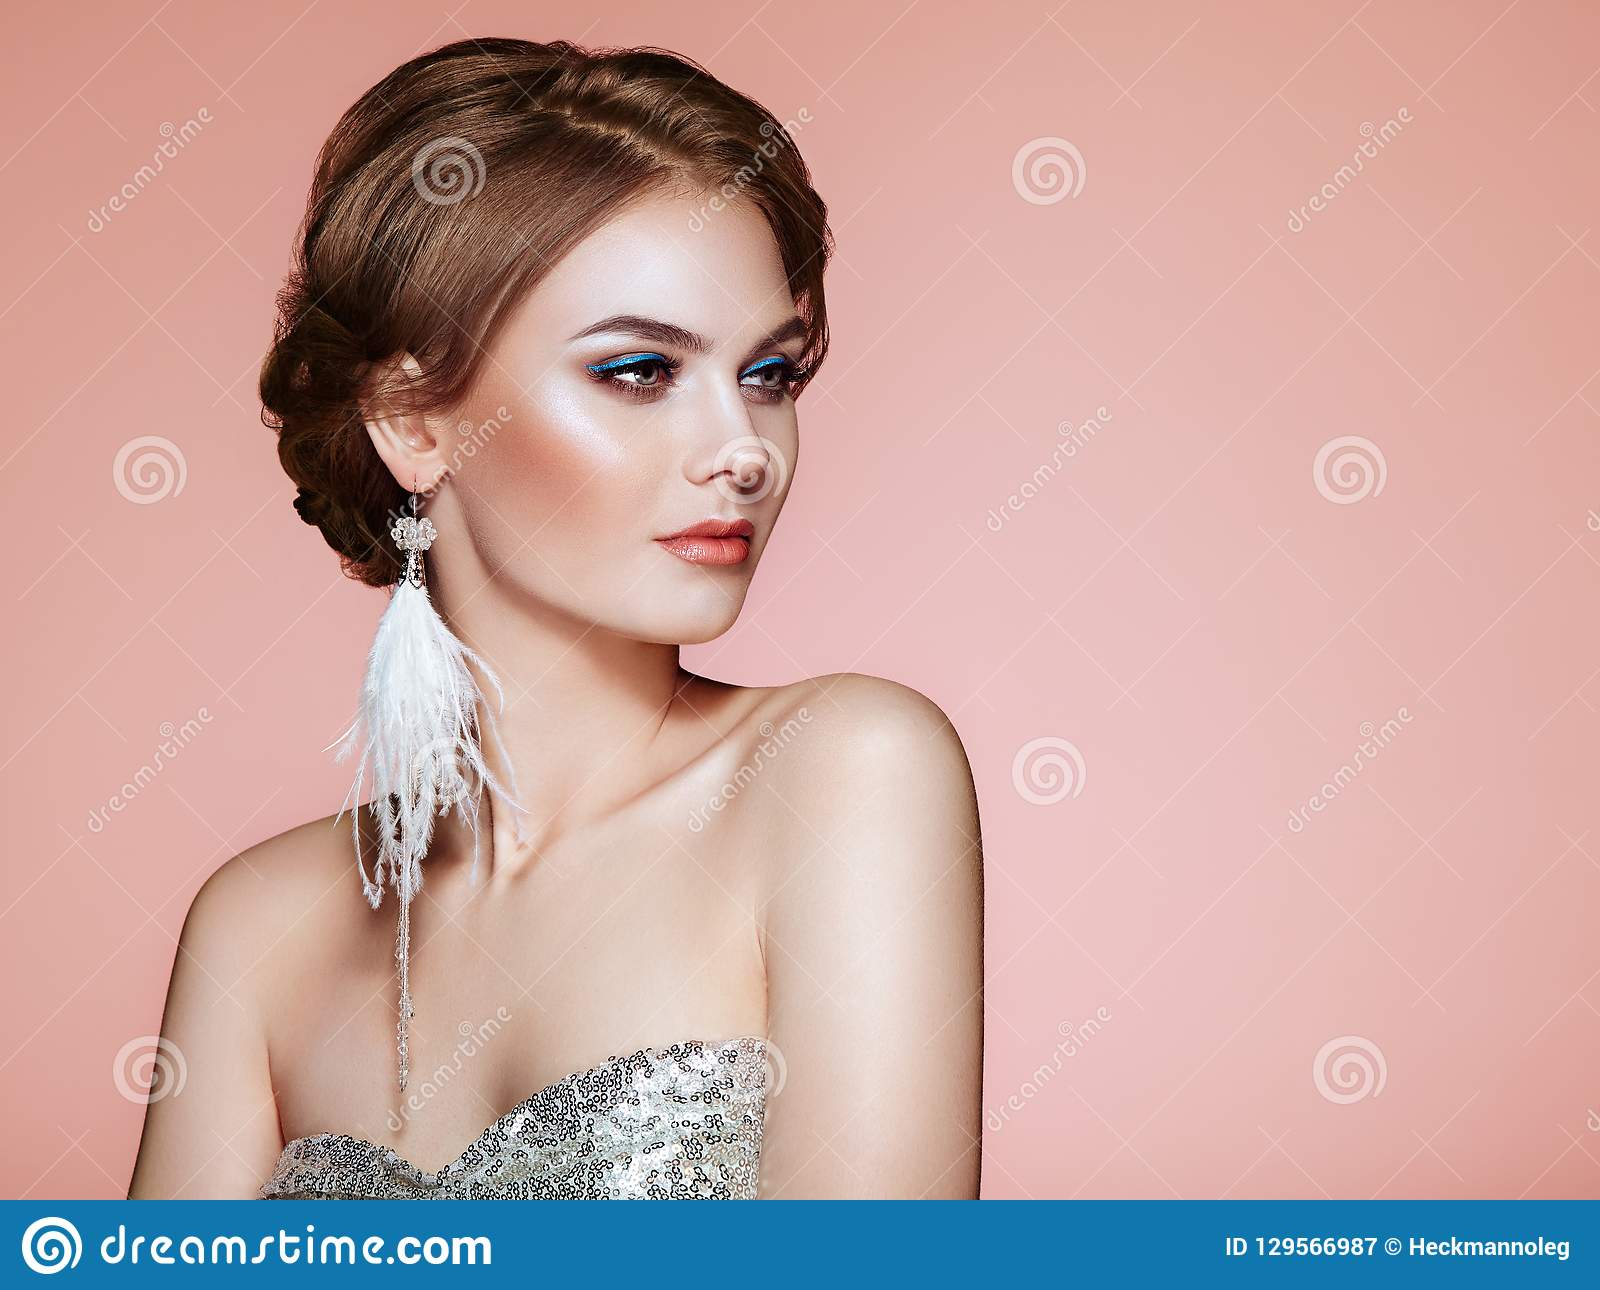 18ca52fe770c0 Beautiful Woman With Large Earrings Tassels Stock Image - Image of ...